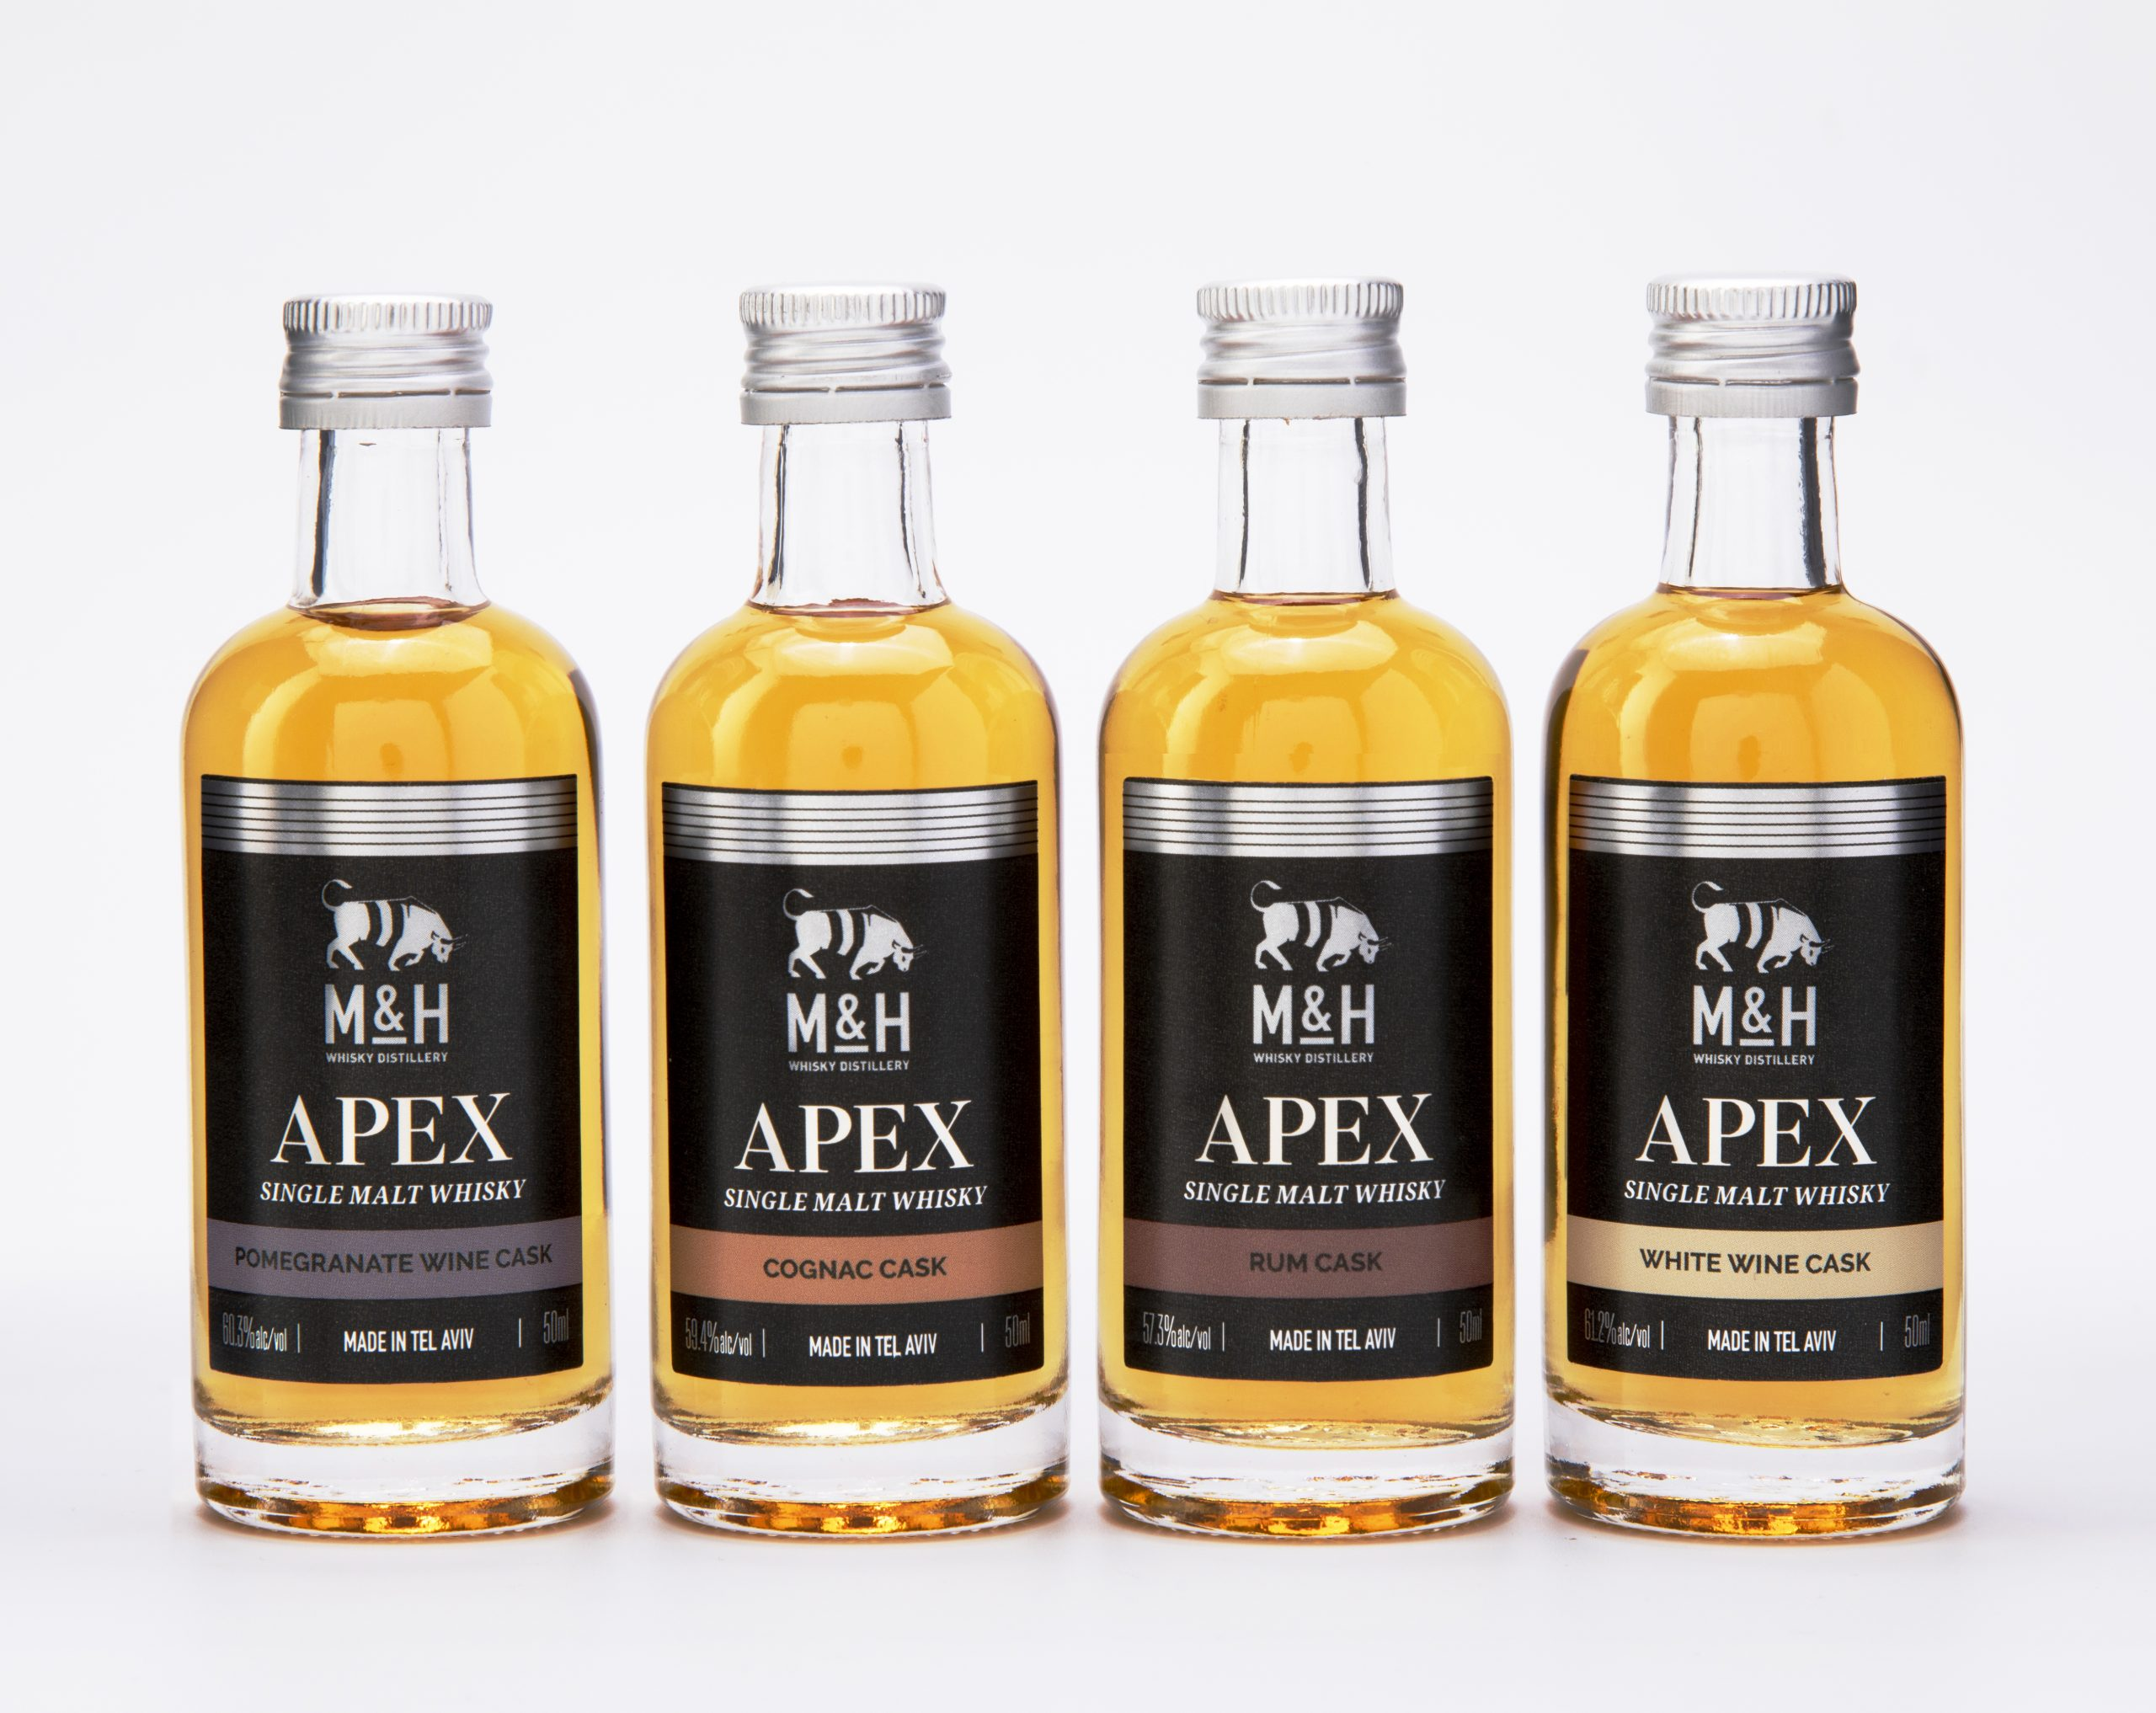 M&H Apex Series Review (Cognac, White Wine, Rum and Pomegranate Wine Casks)